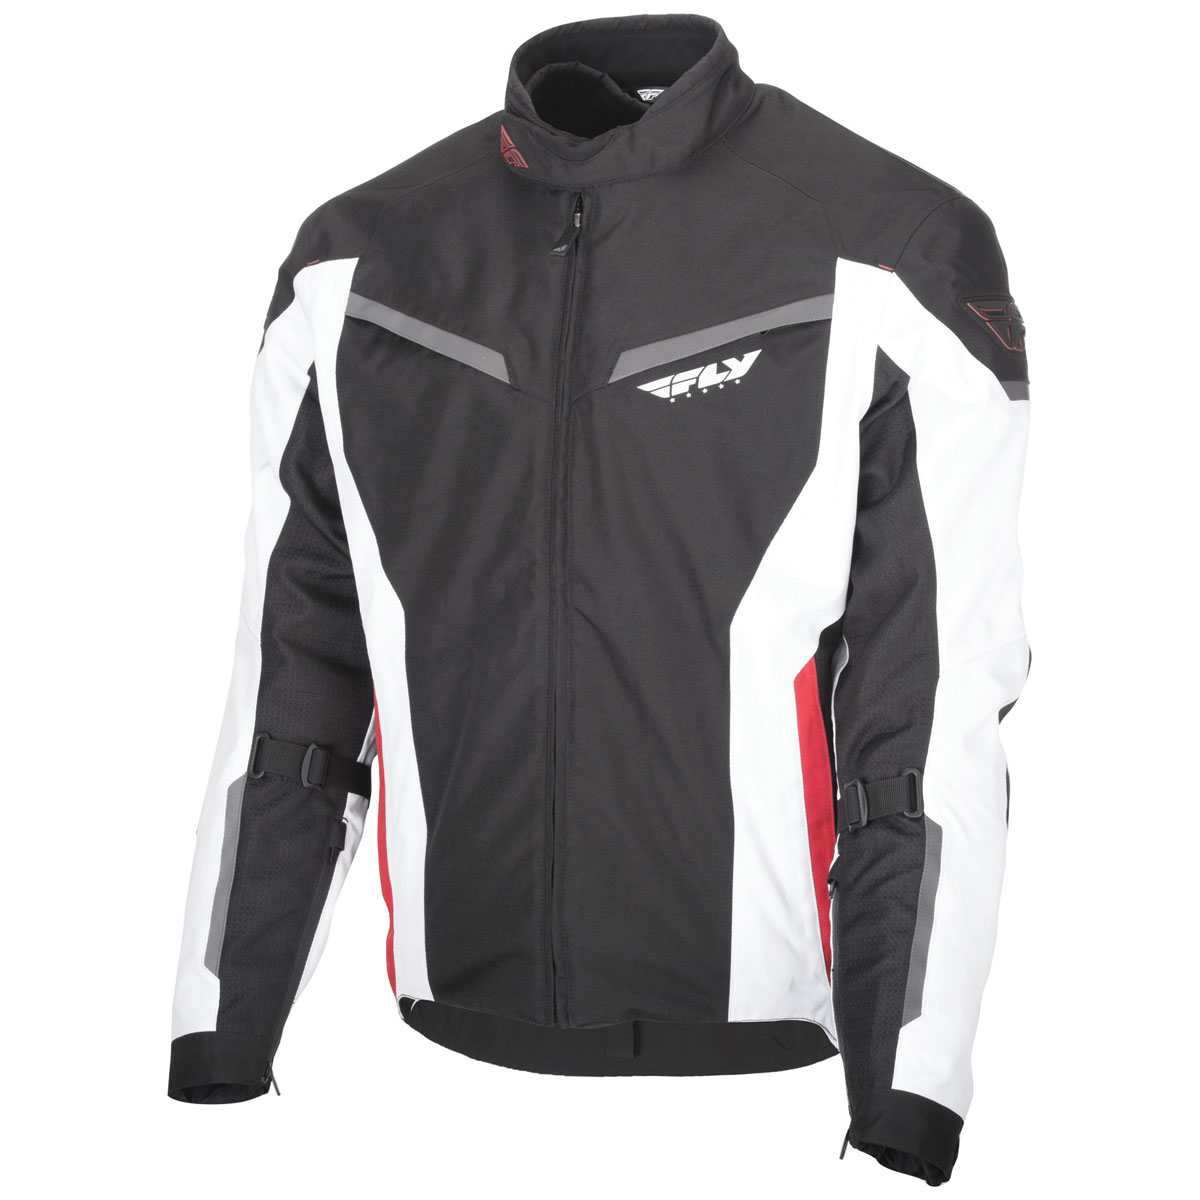 FLY Racing Street Men's Strata Black/Red/White 3 in 1 Textile Jacket